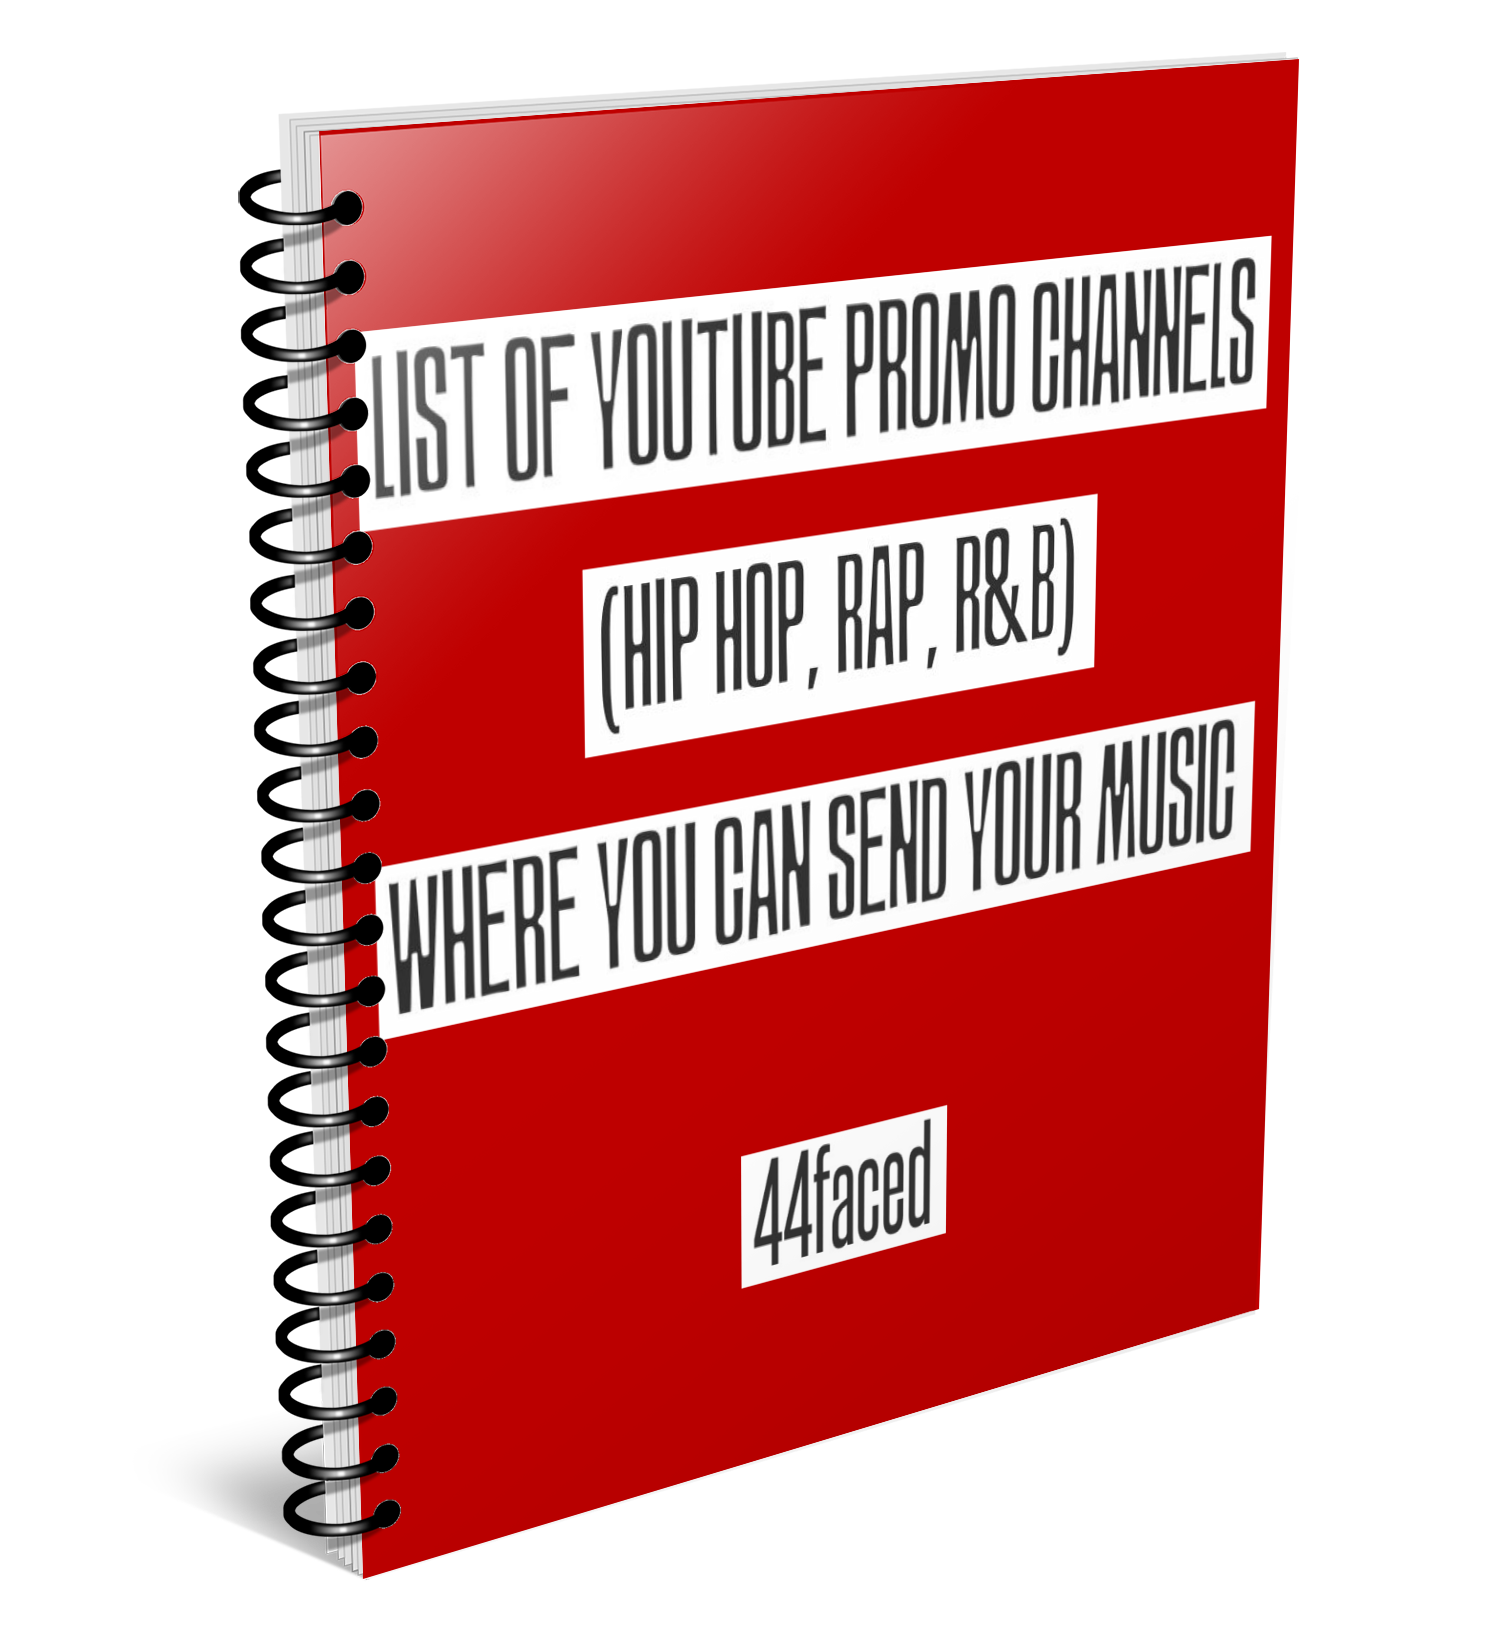 How to Get Your Music on Hip Hop, Rap and R&B Blogs: Includes List of Over 300 Blogs